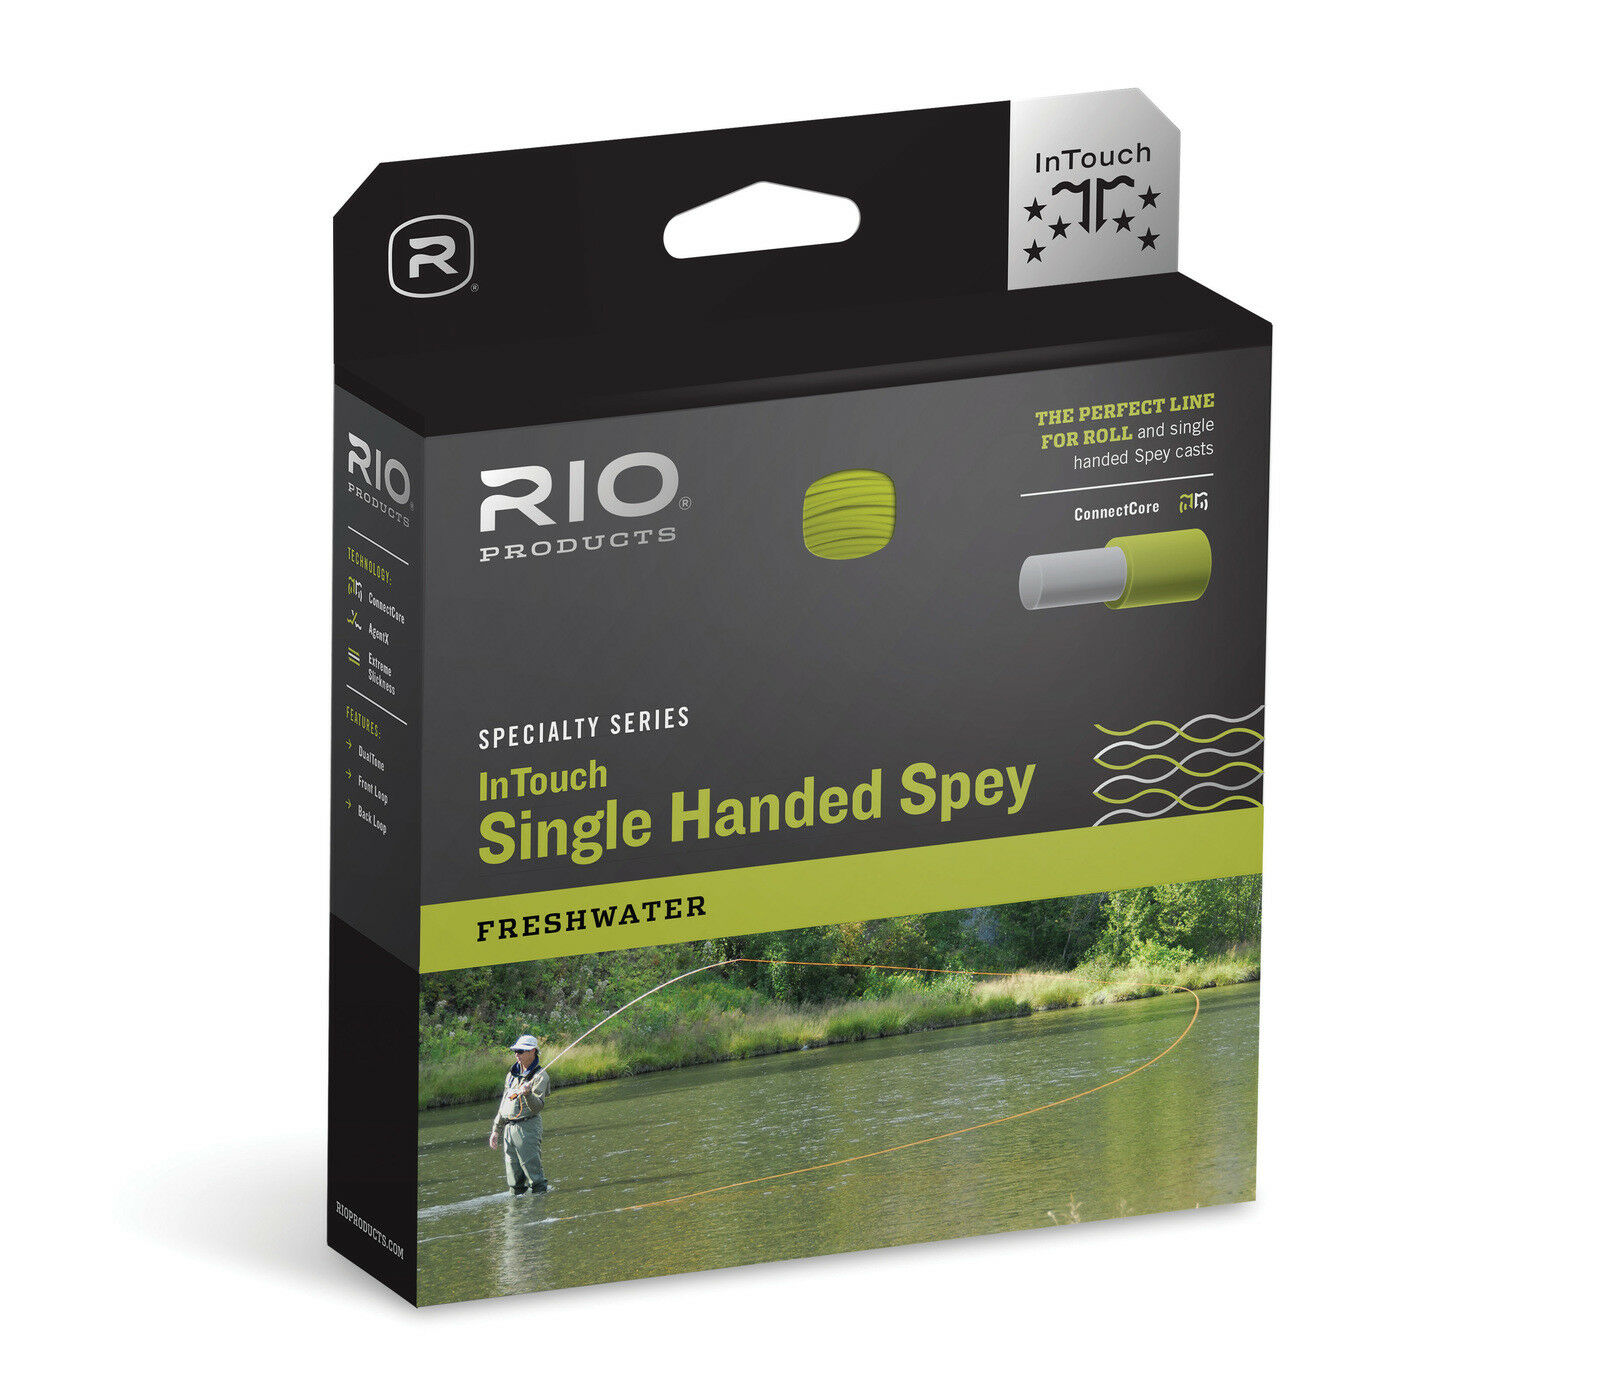 RIO InTouch Single Hand Spey 3D F H I  Fly Line - WF5F H I - New  various sizes